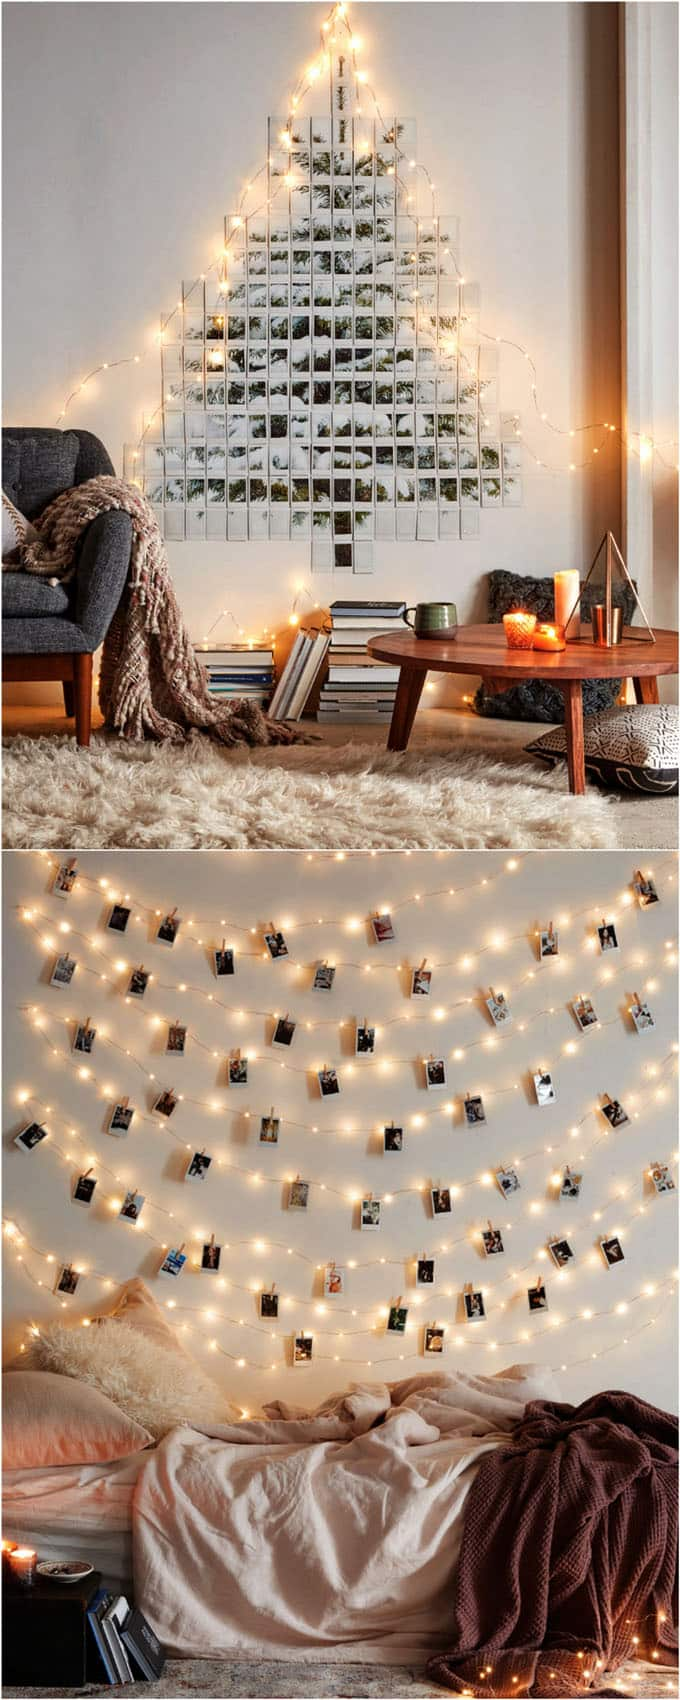 18-magical-string-lights-apieceofrainbowblog-9